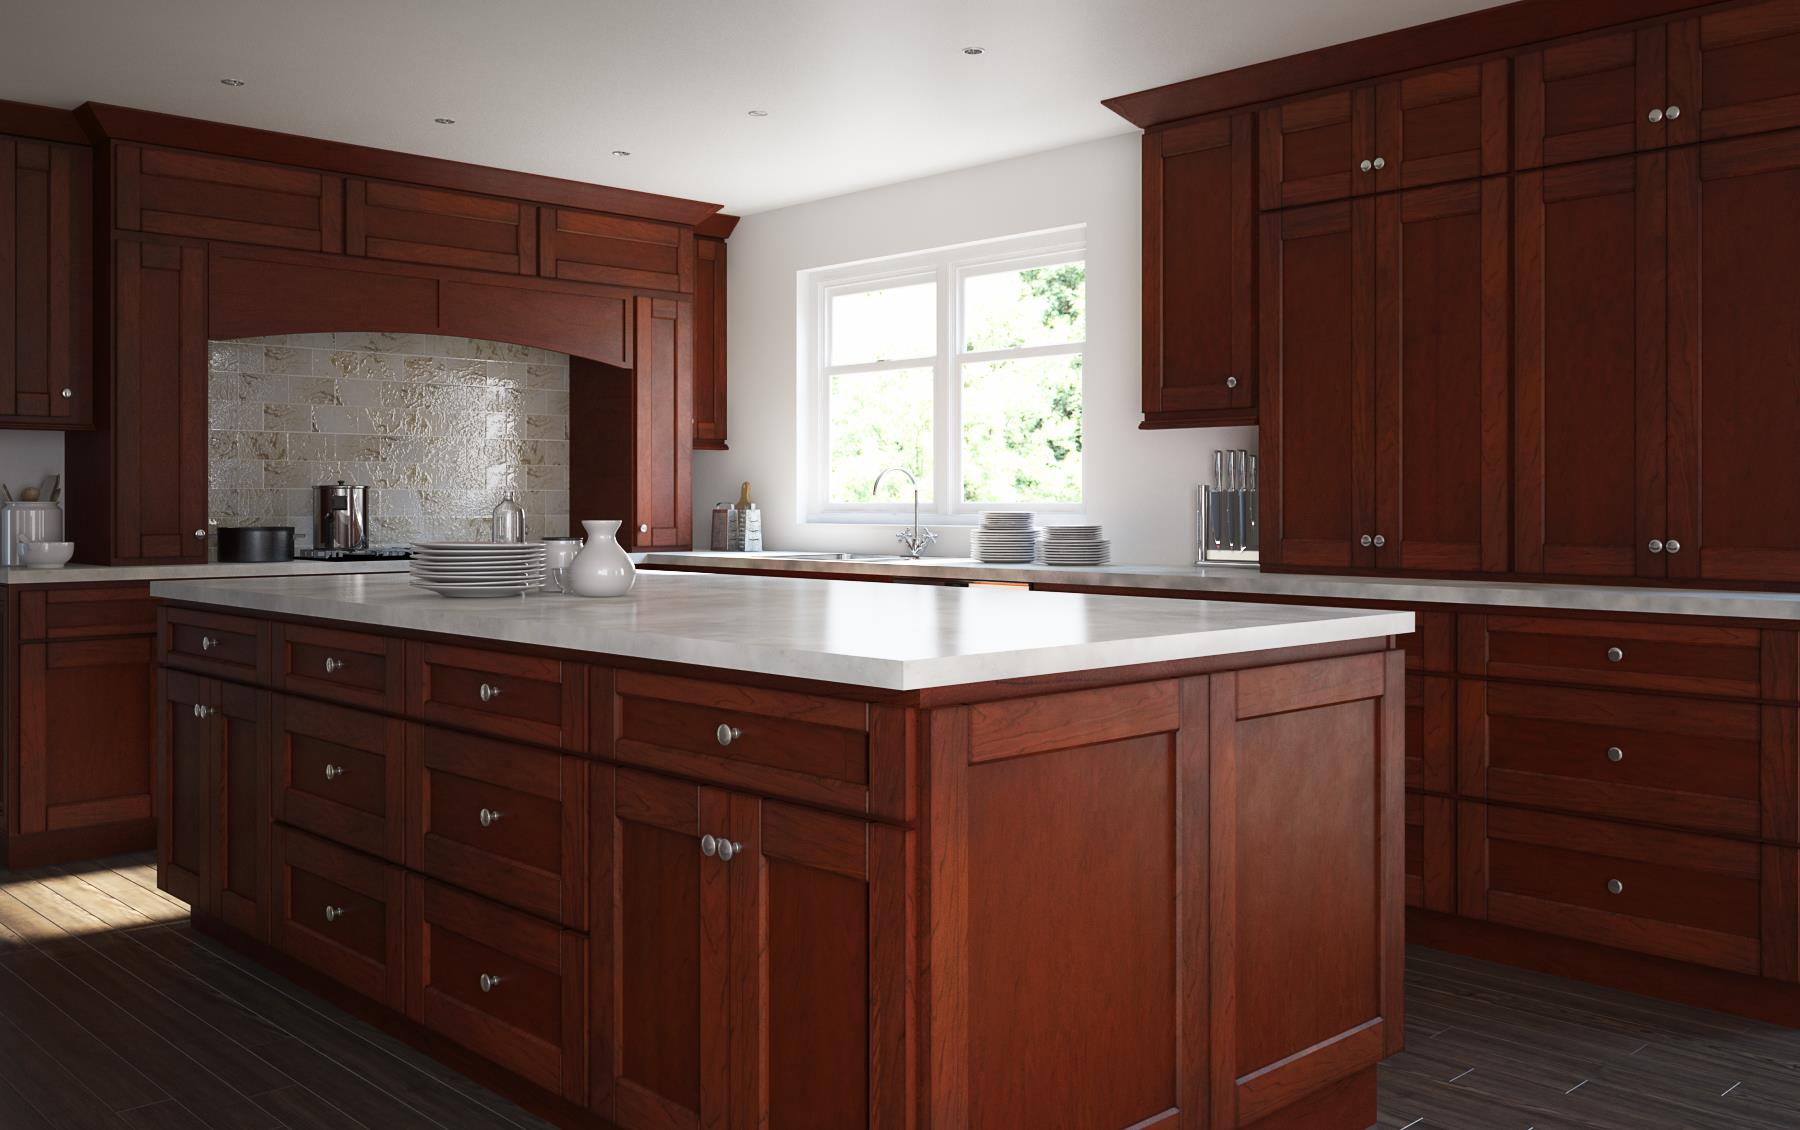 Manchester Shaker Brandywine Kitchen Cabinets Willow Lane Cabinetry